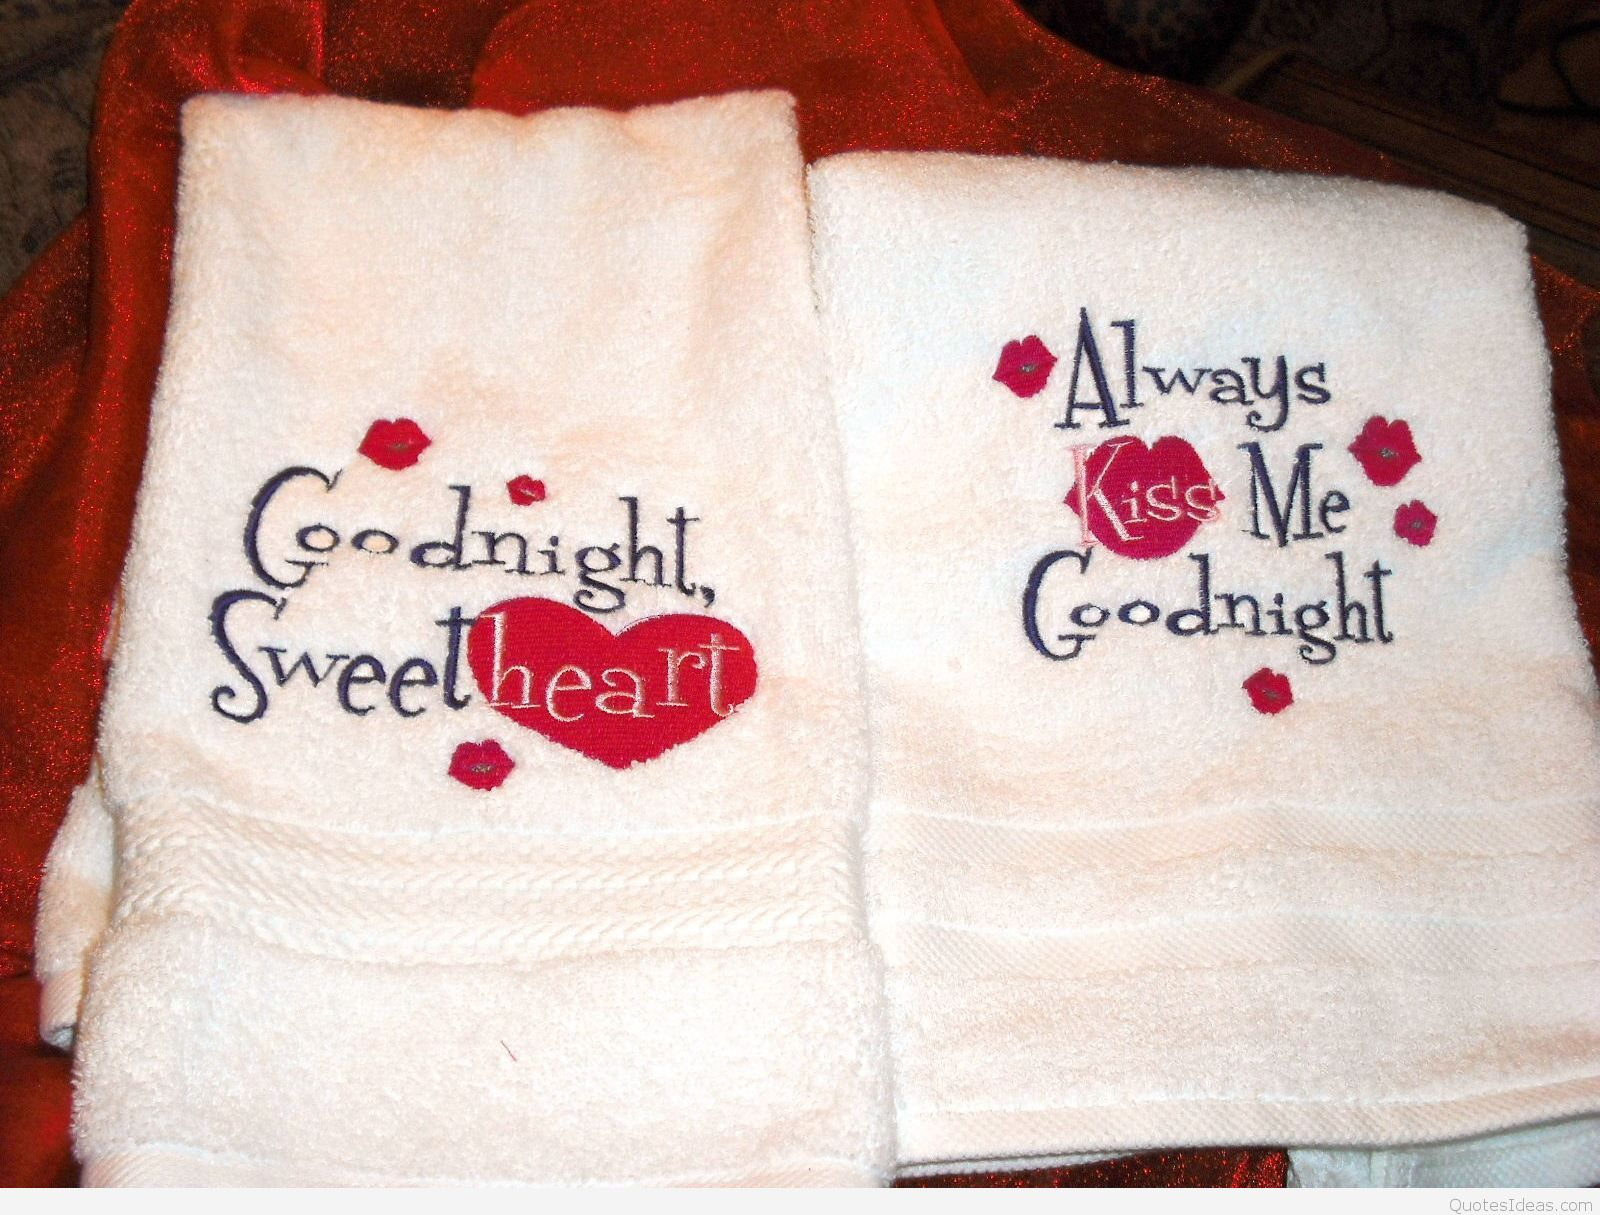 Good Night Cards Quotes Thoughts Love - Good Night Best Love - HD Wallpaper